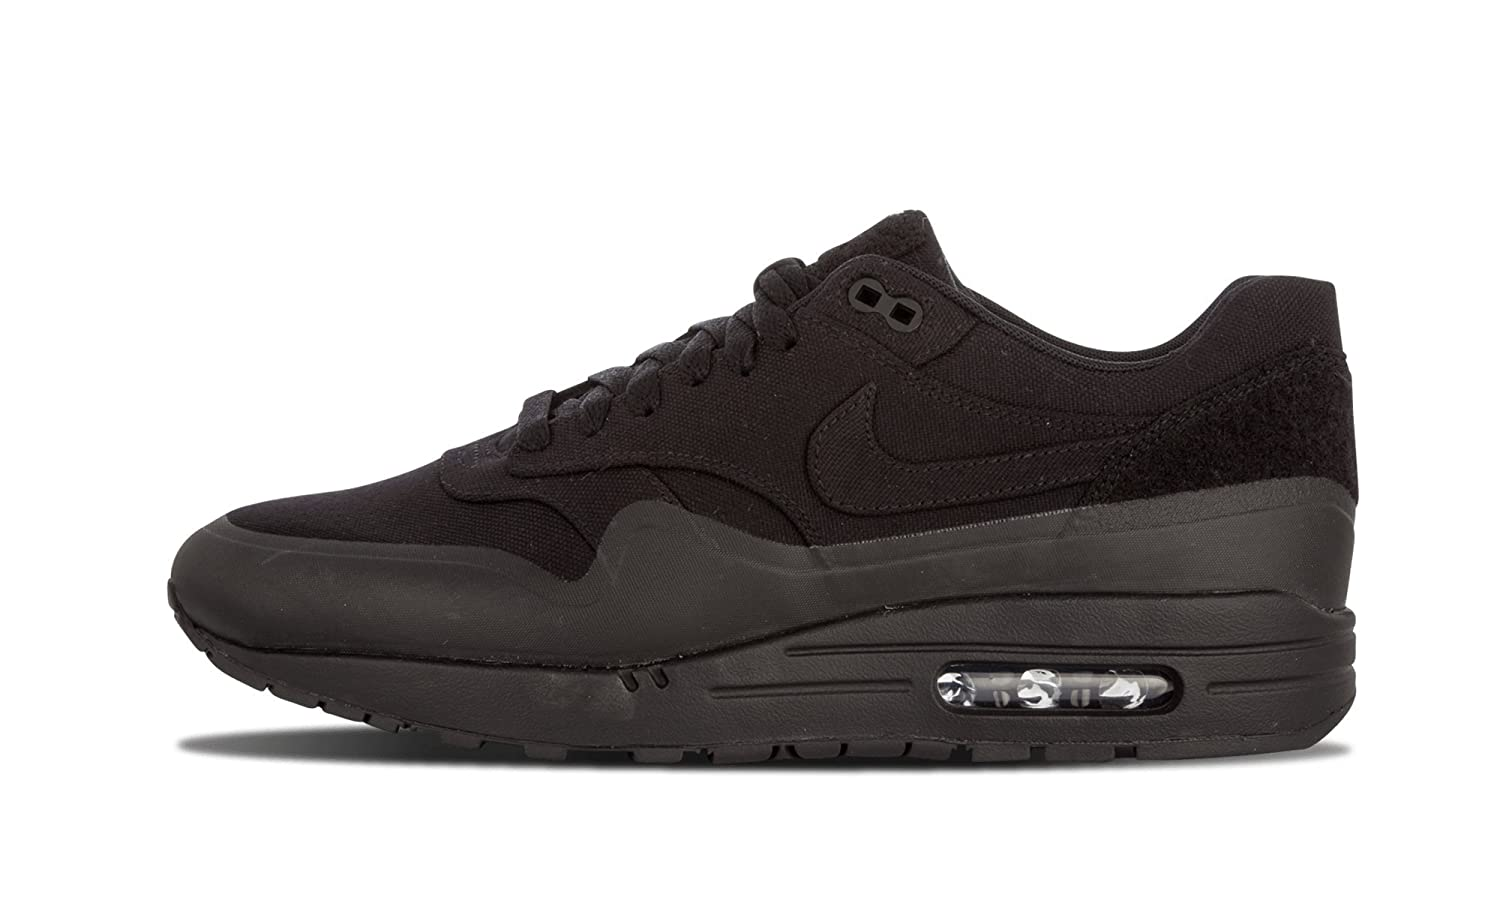 NIKE Air Max 1 V SP Black 'Patch' - 704901-001 B00585UH78 6 D(M) US